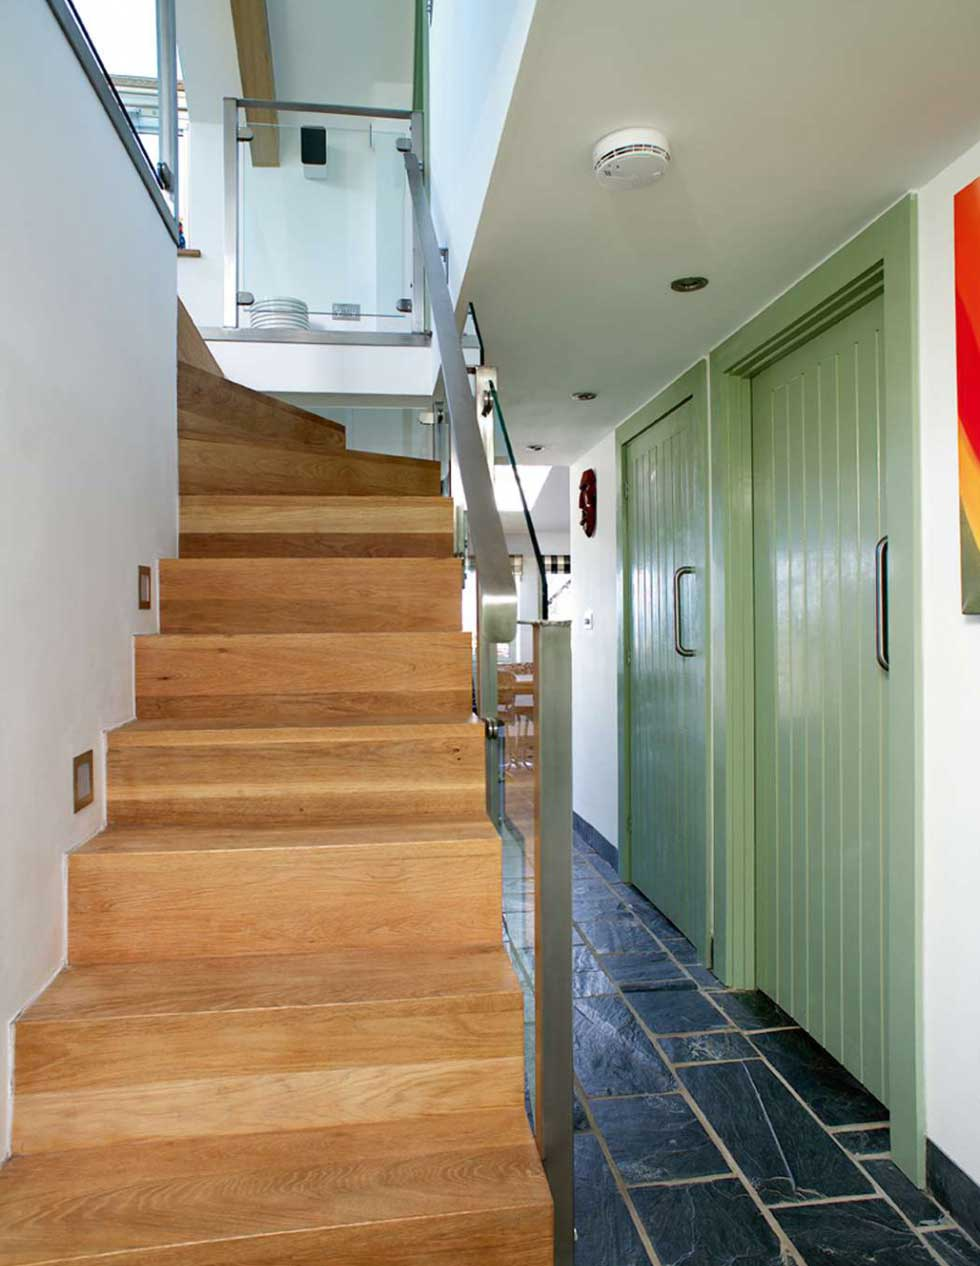 A wooden staircase with glass and steel balustrading